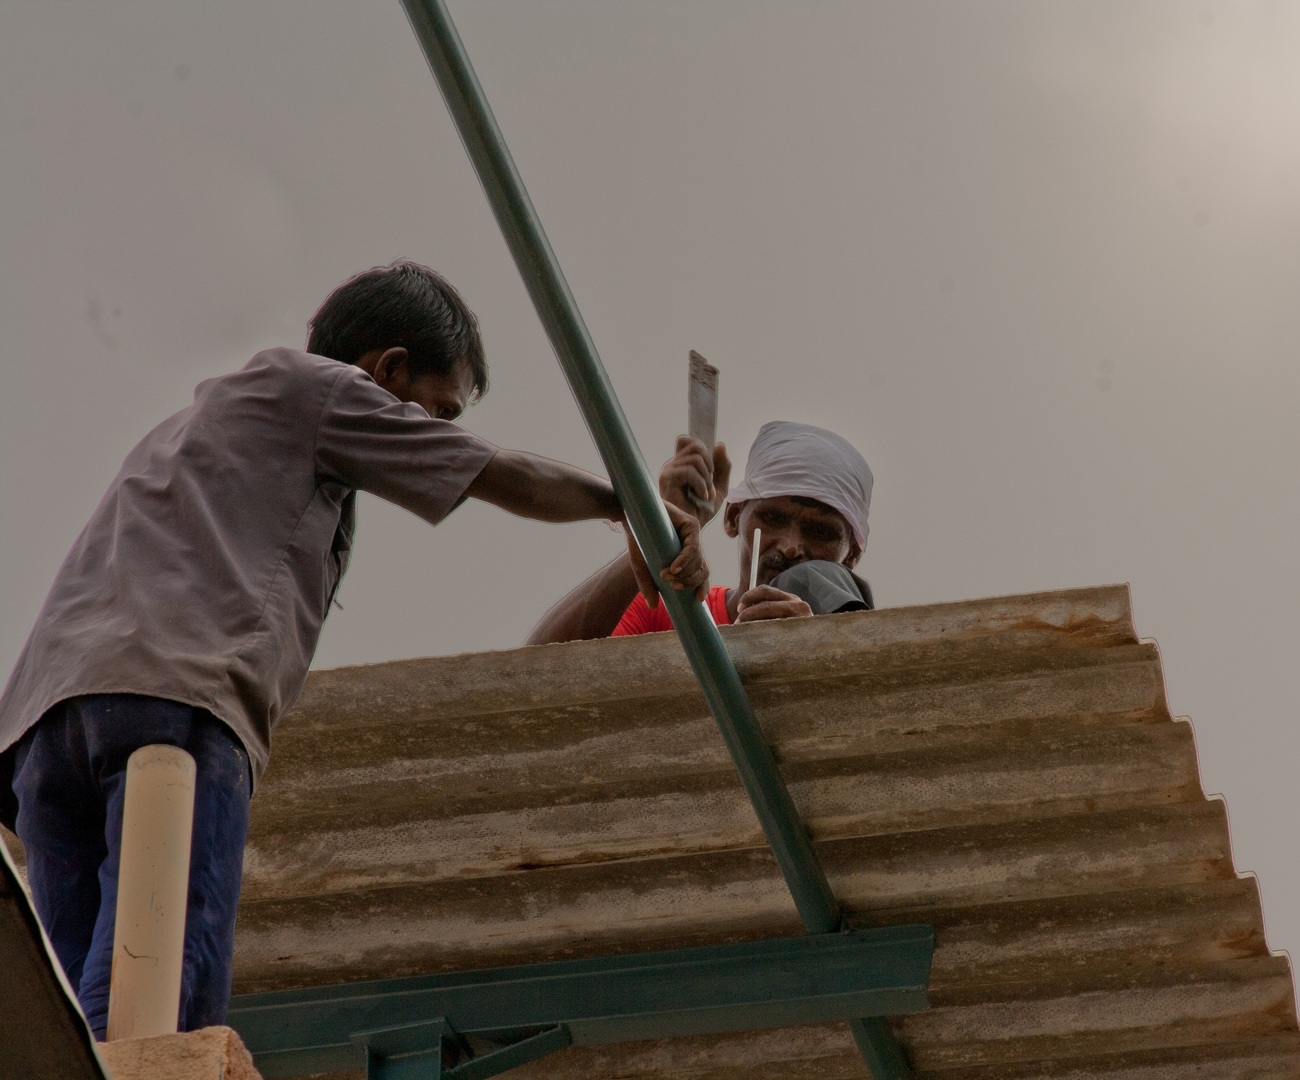 2 people working at a construction site